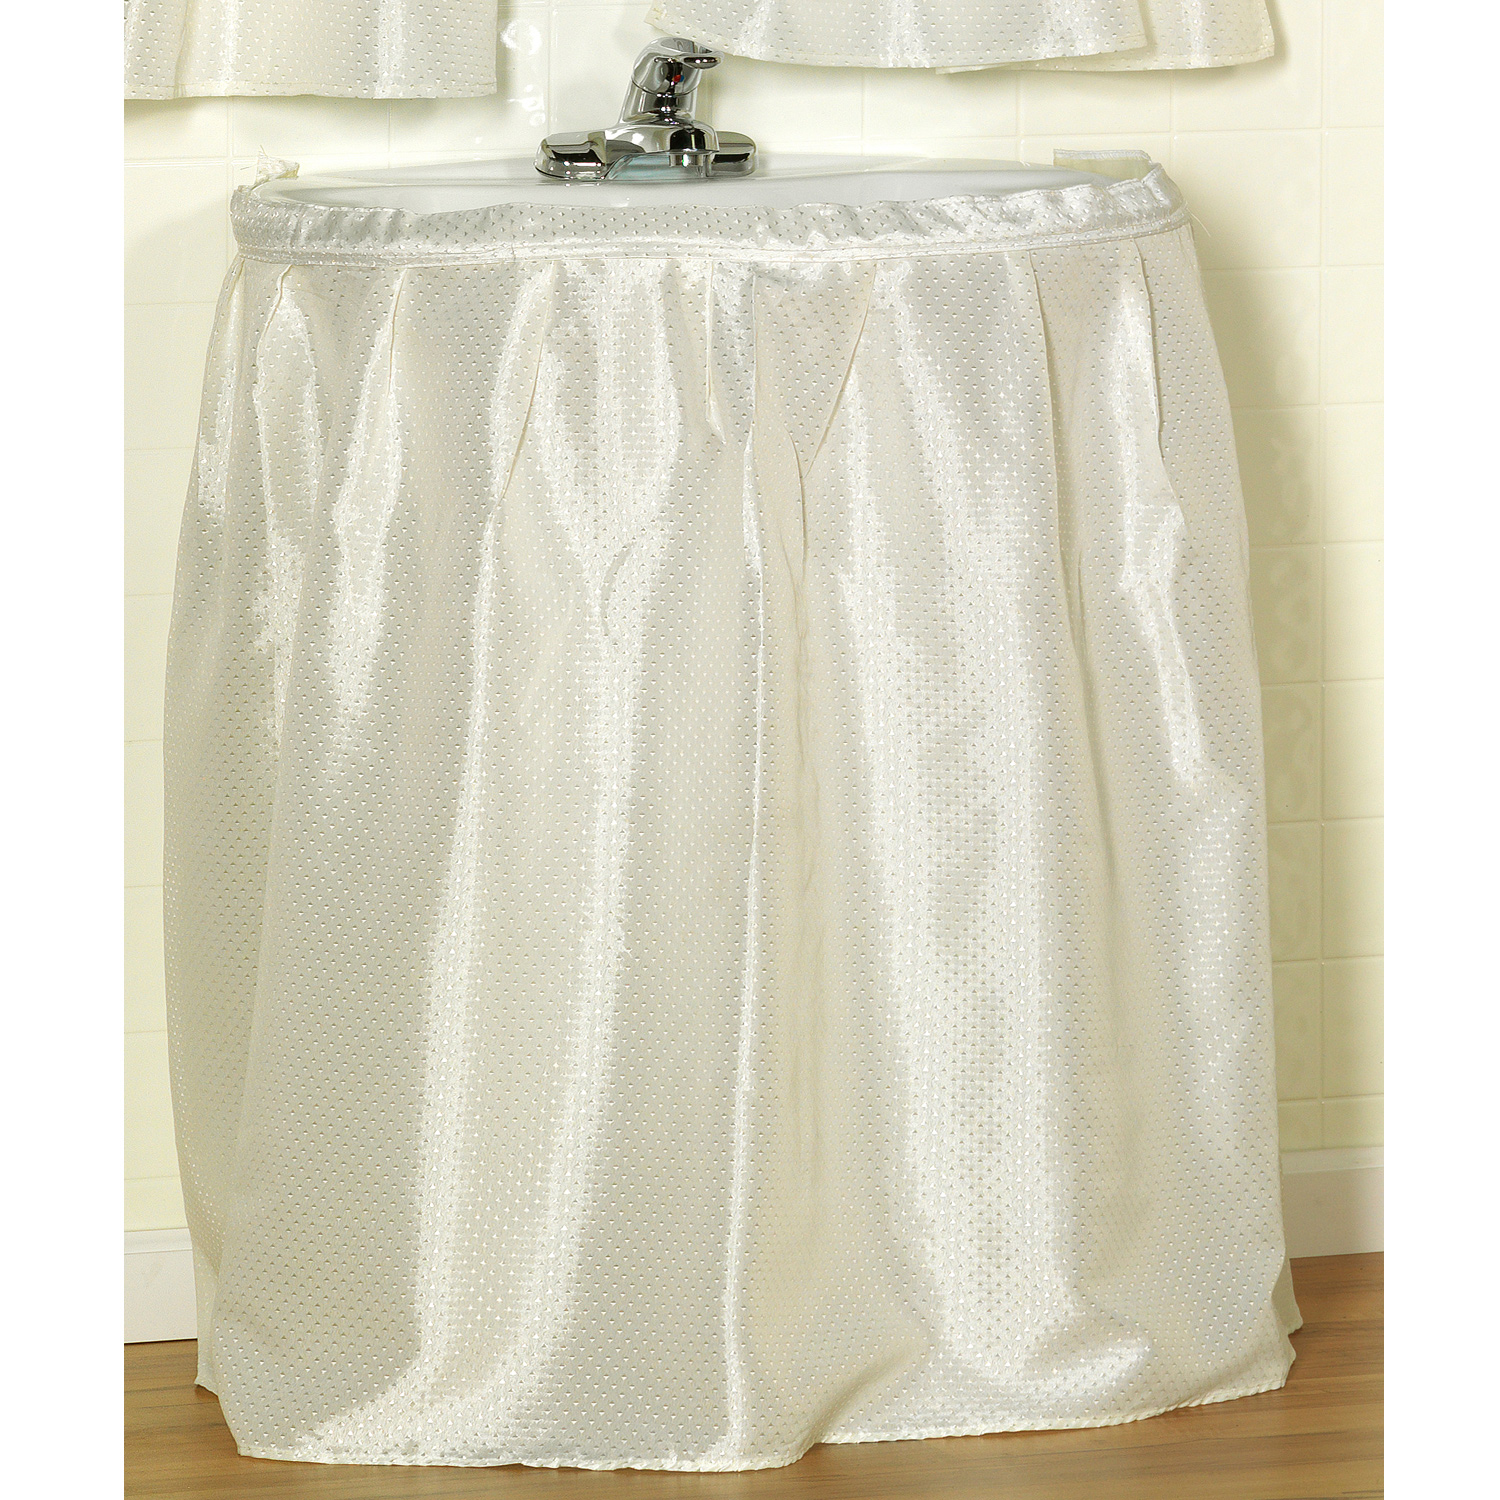 "Lauren Embossed Diamond Pattern Fabric Bathroom Sink Drape 56""W x 32""L"